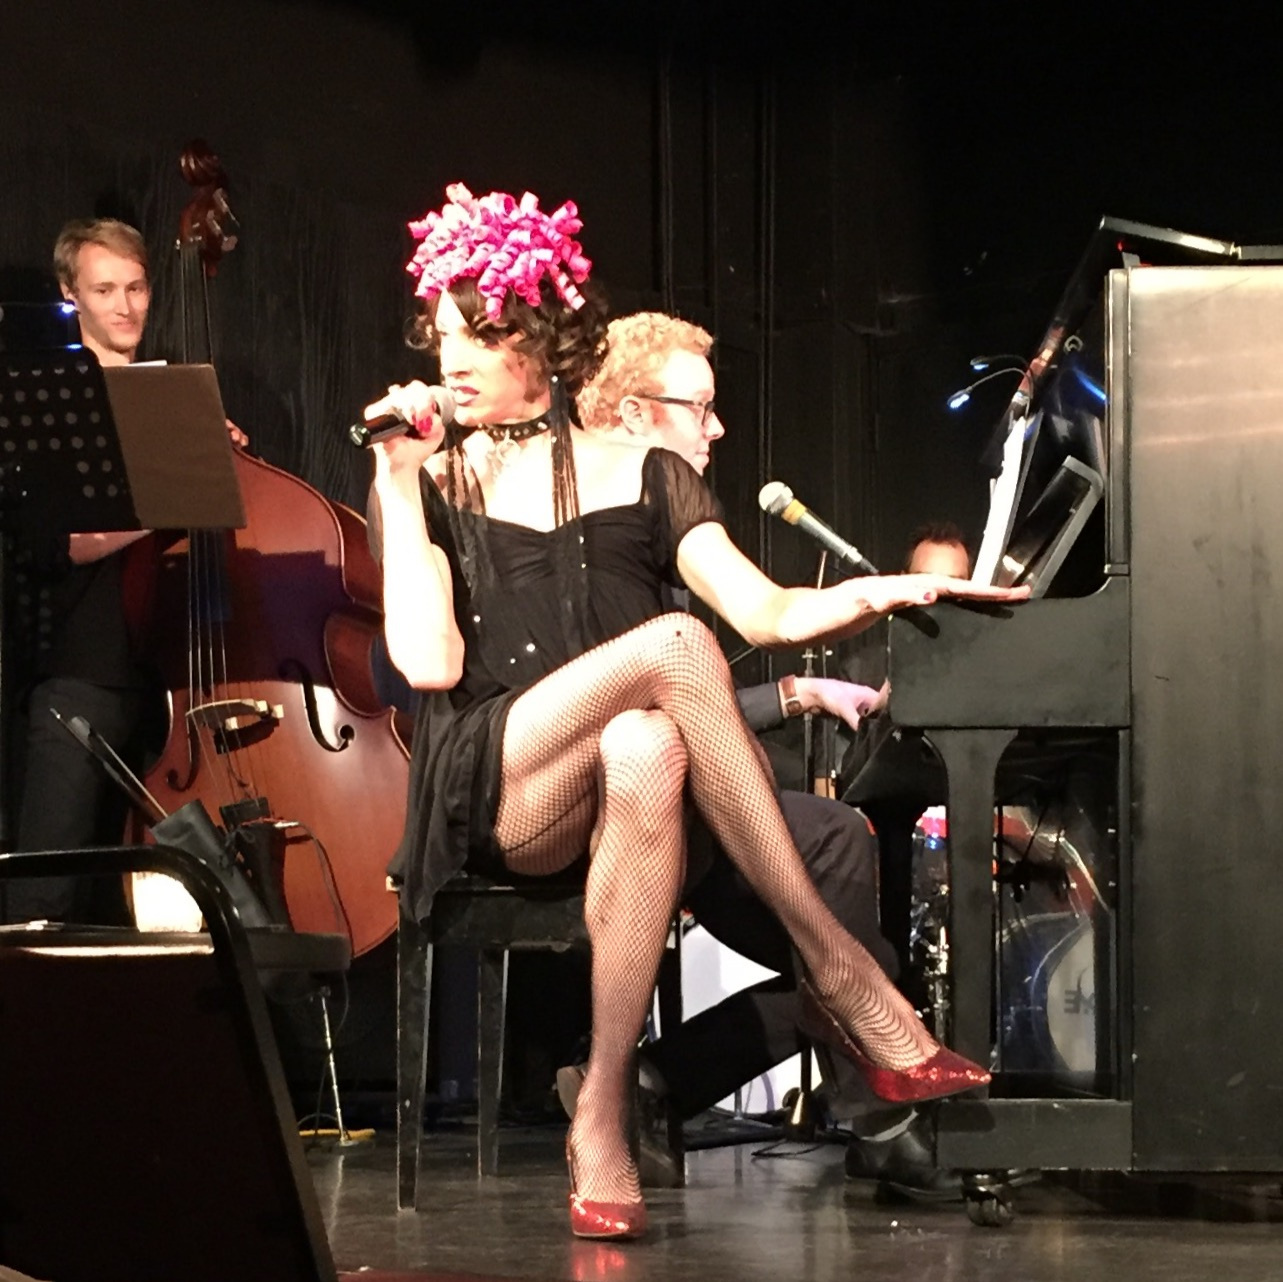 Mistress Ginger in the 2016 biopic cabaret spectacular,  Hello My Name Is Mistress Ginger